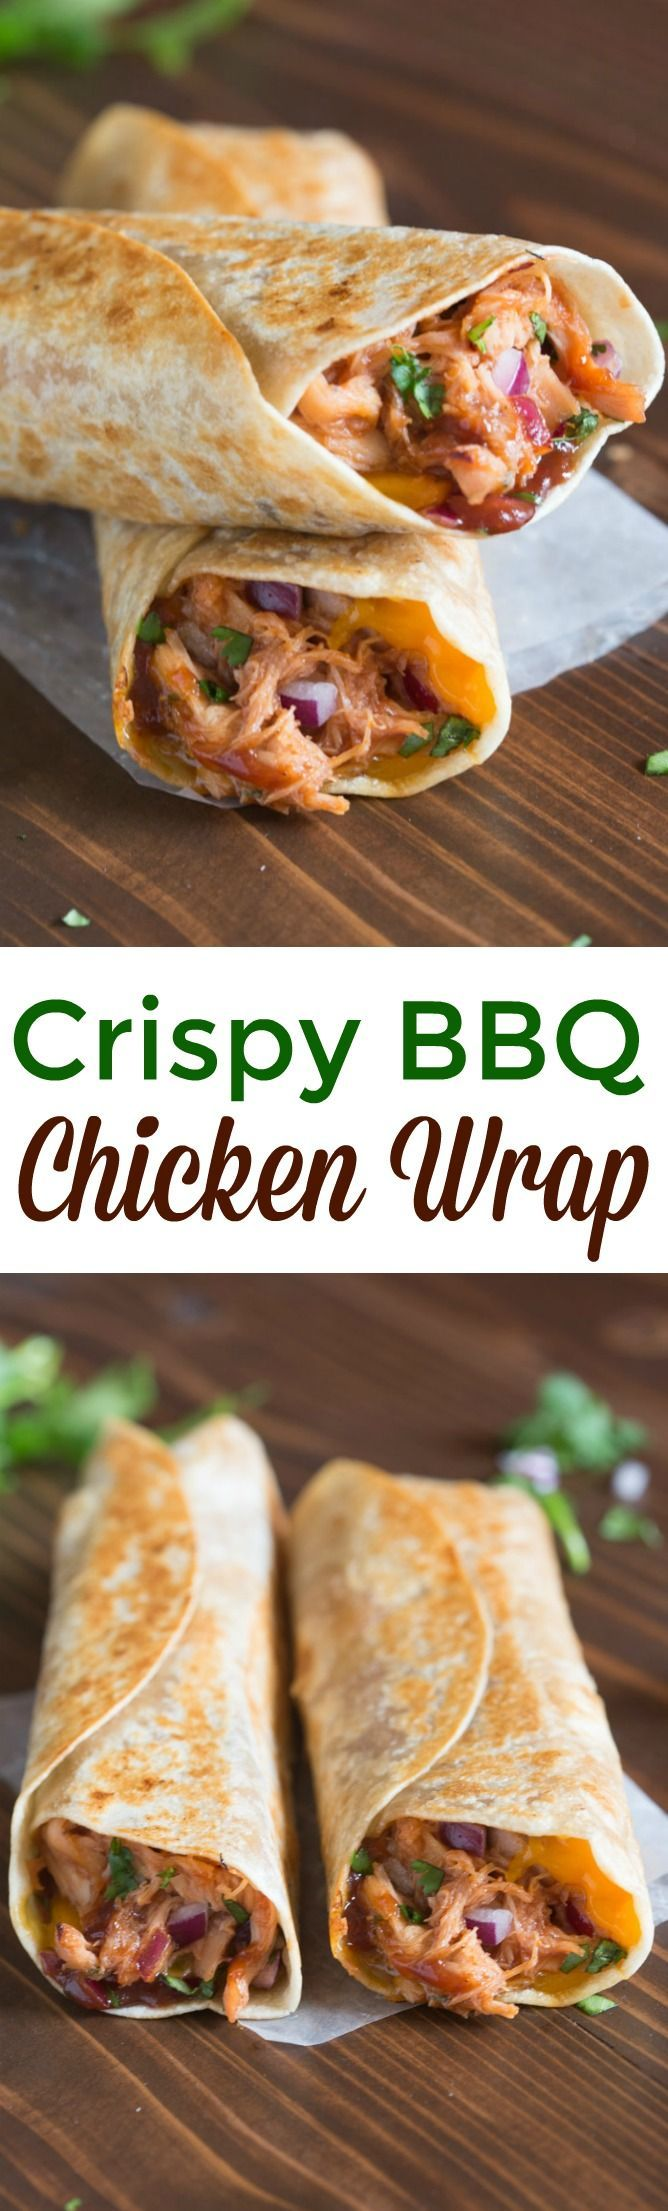 Crispy BBQ Chicken Wraps